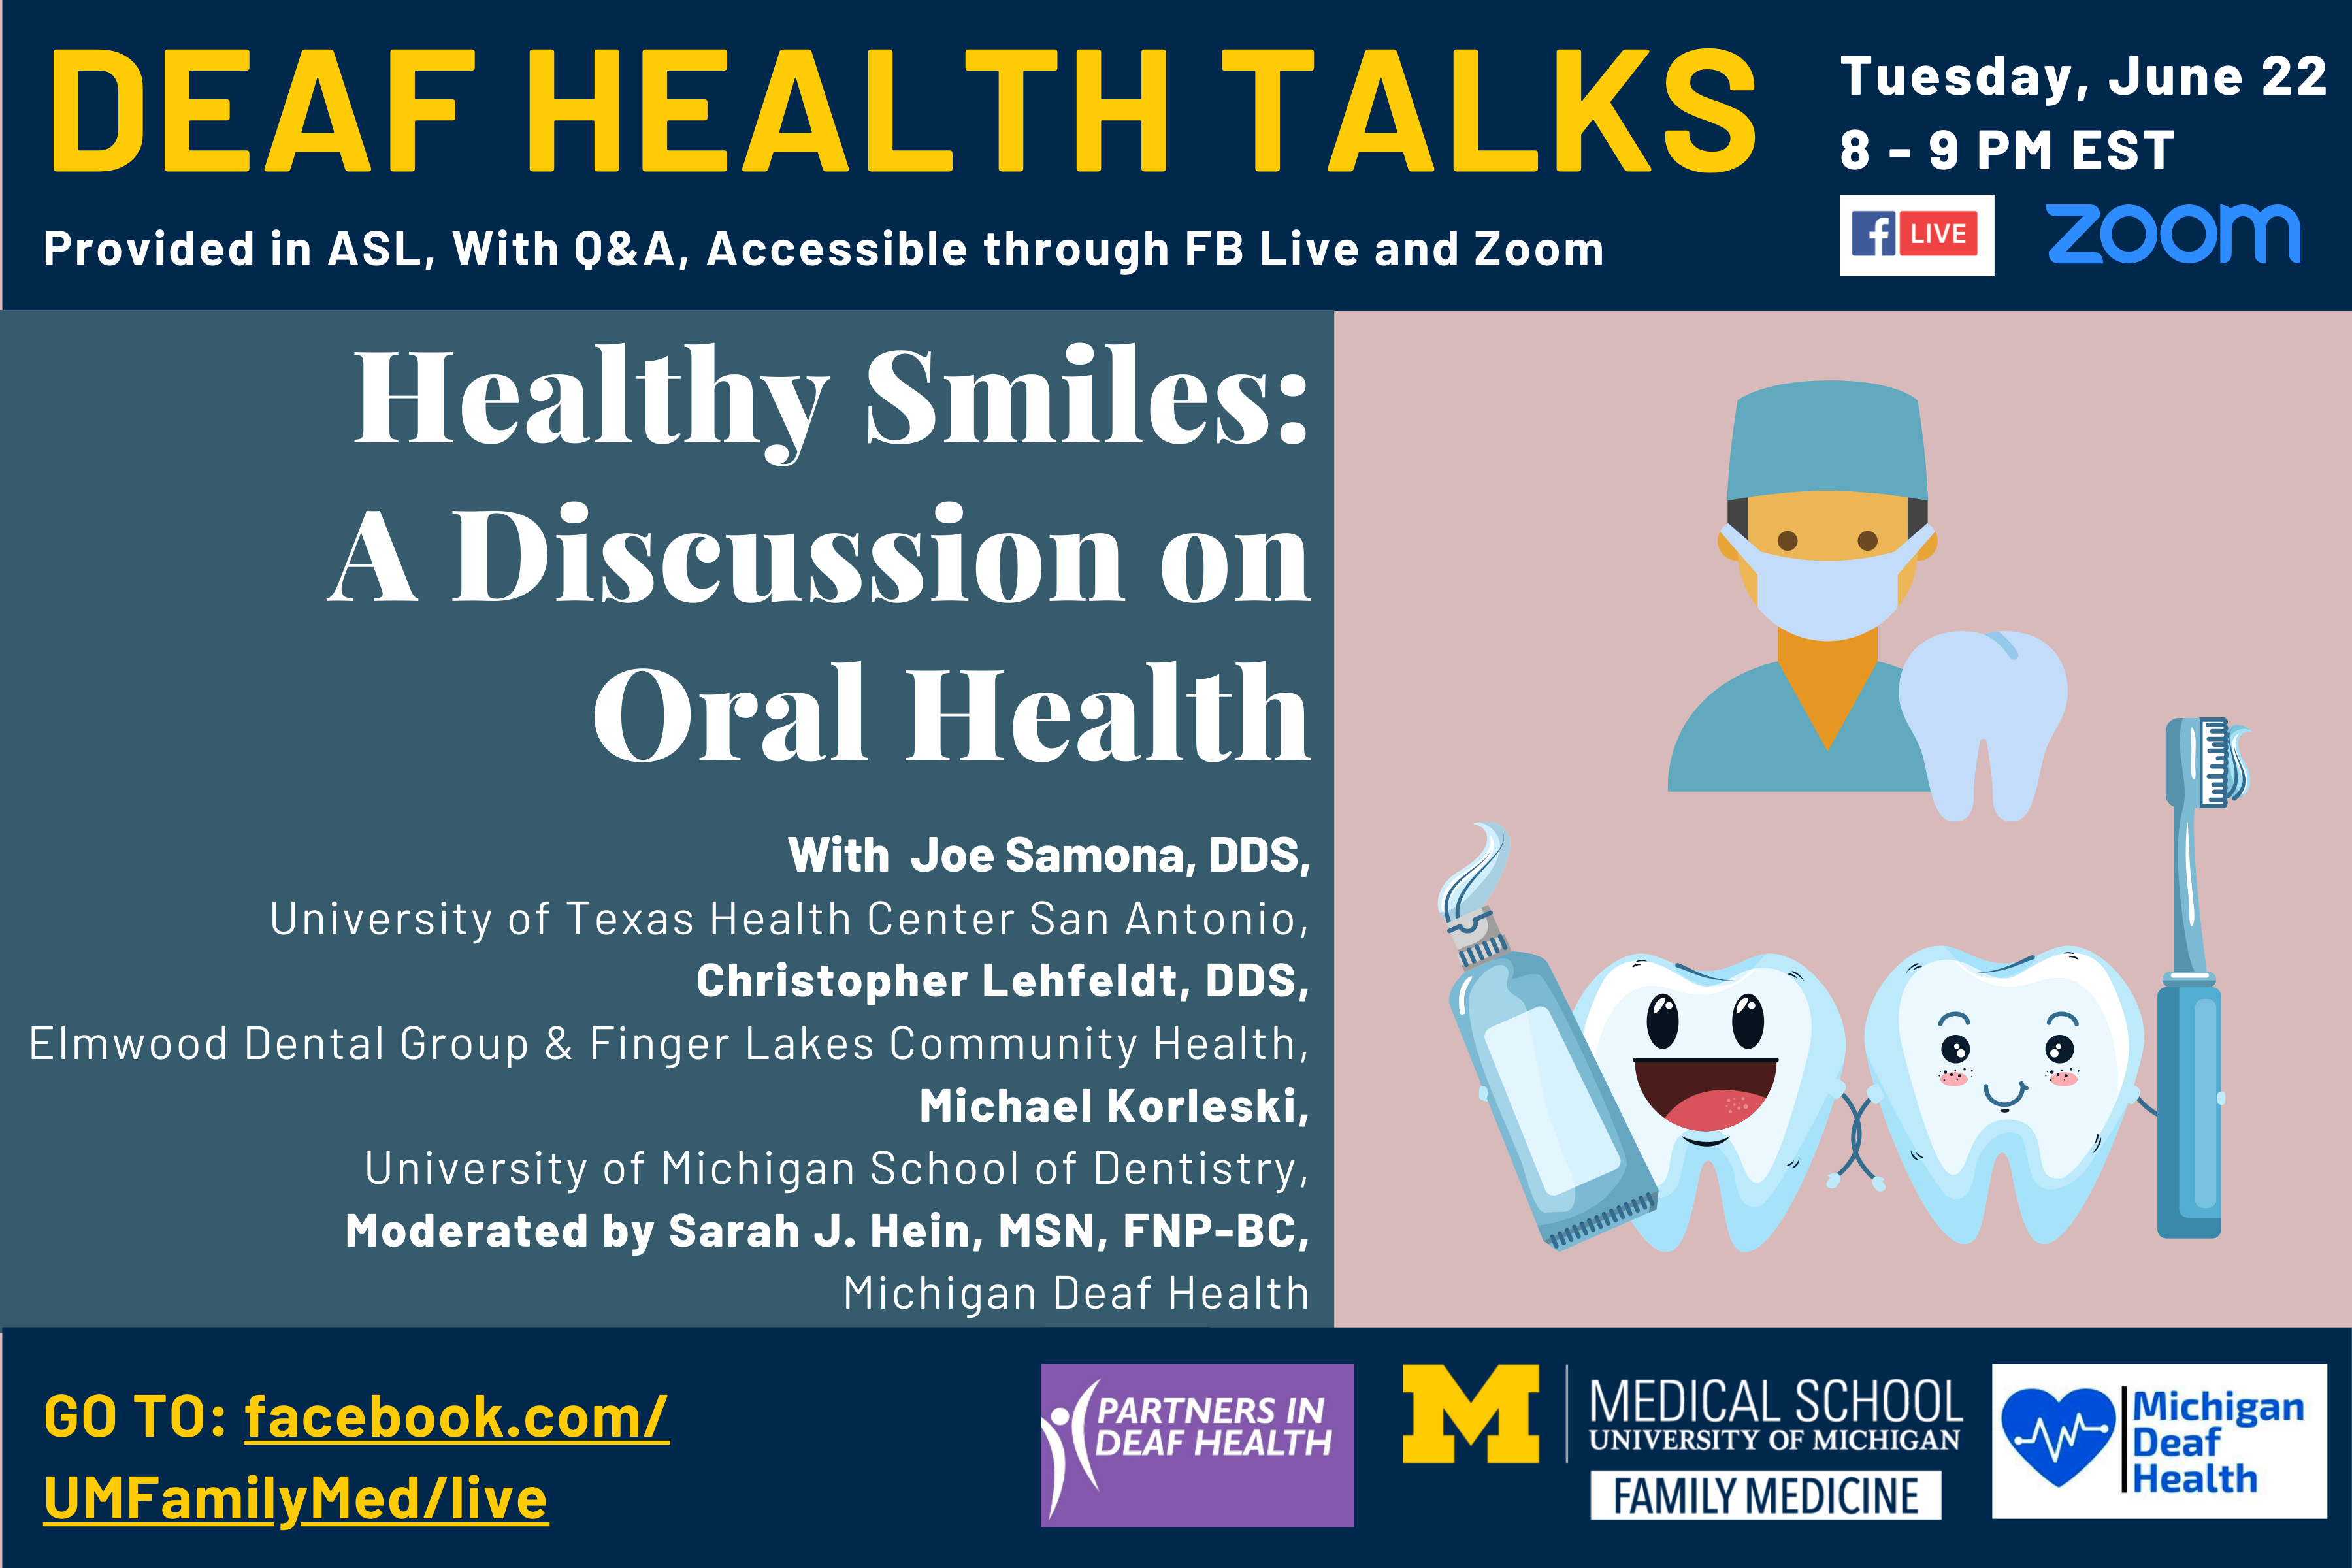 Deaf Health Talks, provided in ASL, with Q&A. Happening Tuesday, June 22, 8 to 9 PM EST, on Facebook Live and Zoom. Healthy Smiles: A Discussion on Oral Health, with Joe Samona, DDS from University of Texas Health Center at San Antonio, Christopher Lehfel